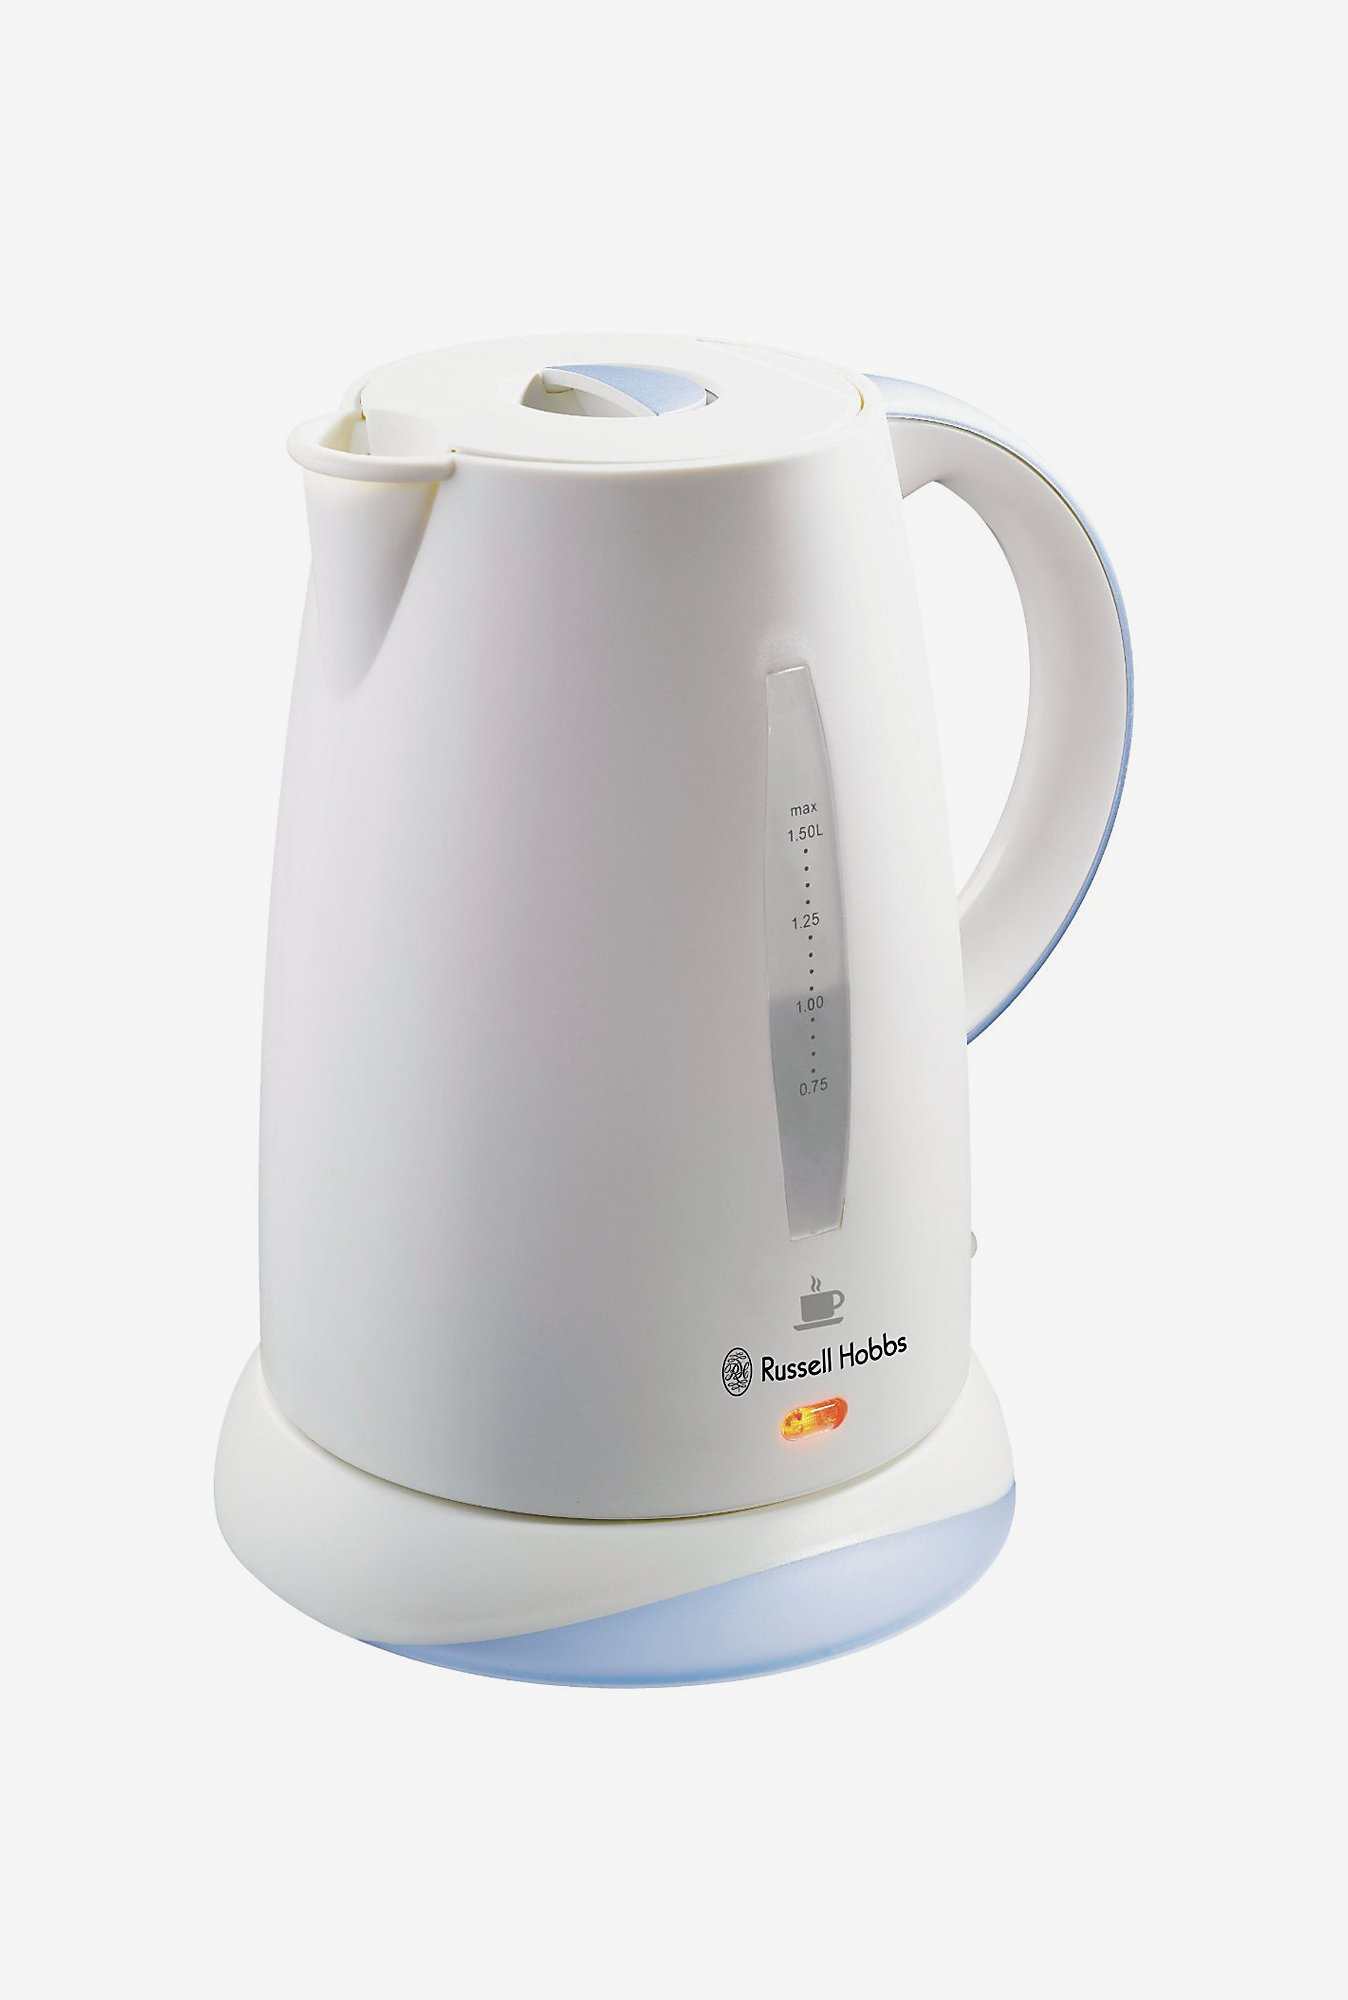 Russell Hobbs RJK51 1.5 L Cordless Electric Kettle (White)